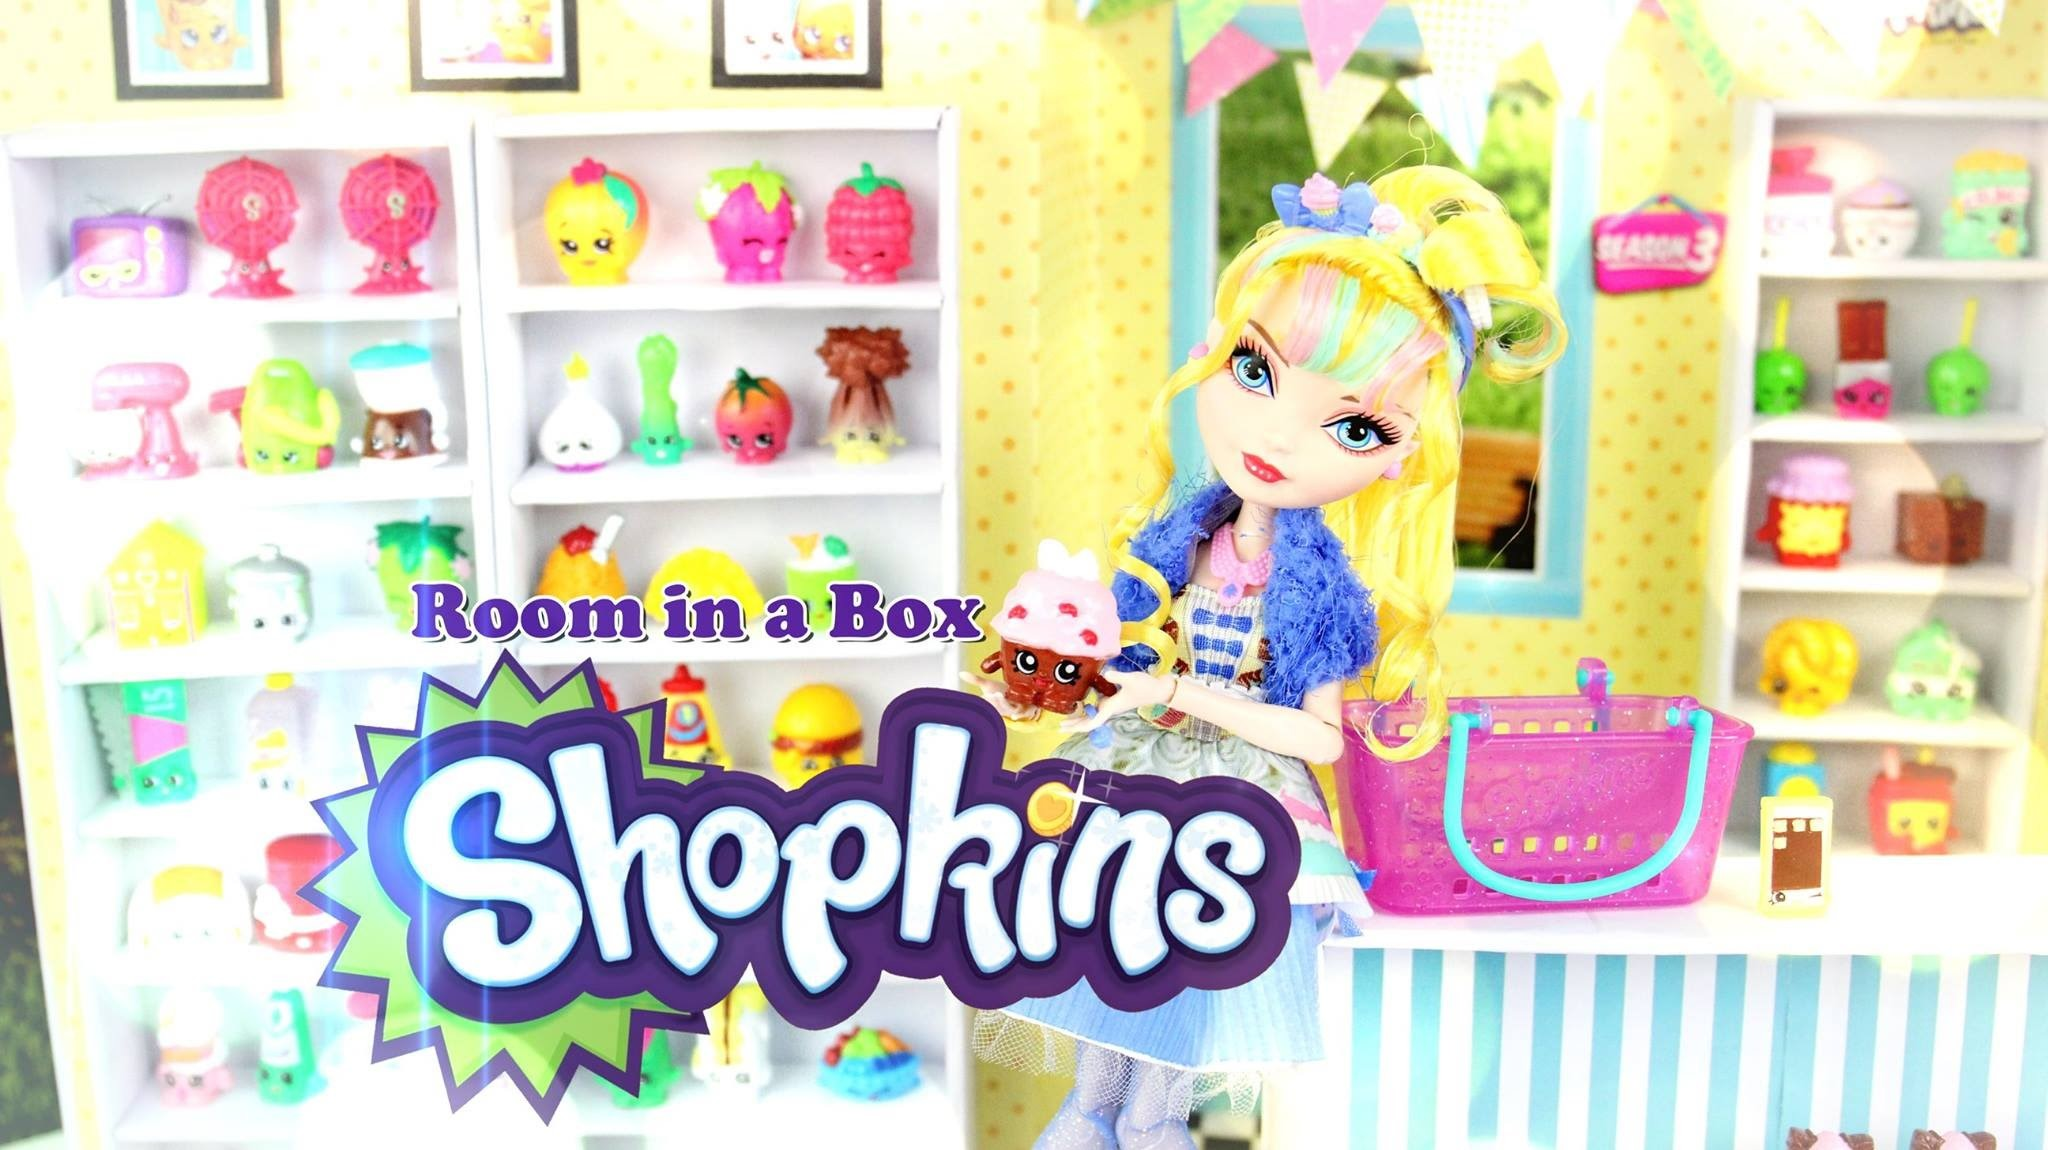 How to Make a Doll Room in a Box: Shopkins - Doll Crafts